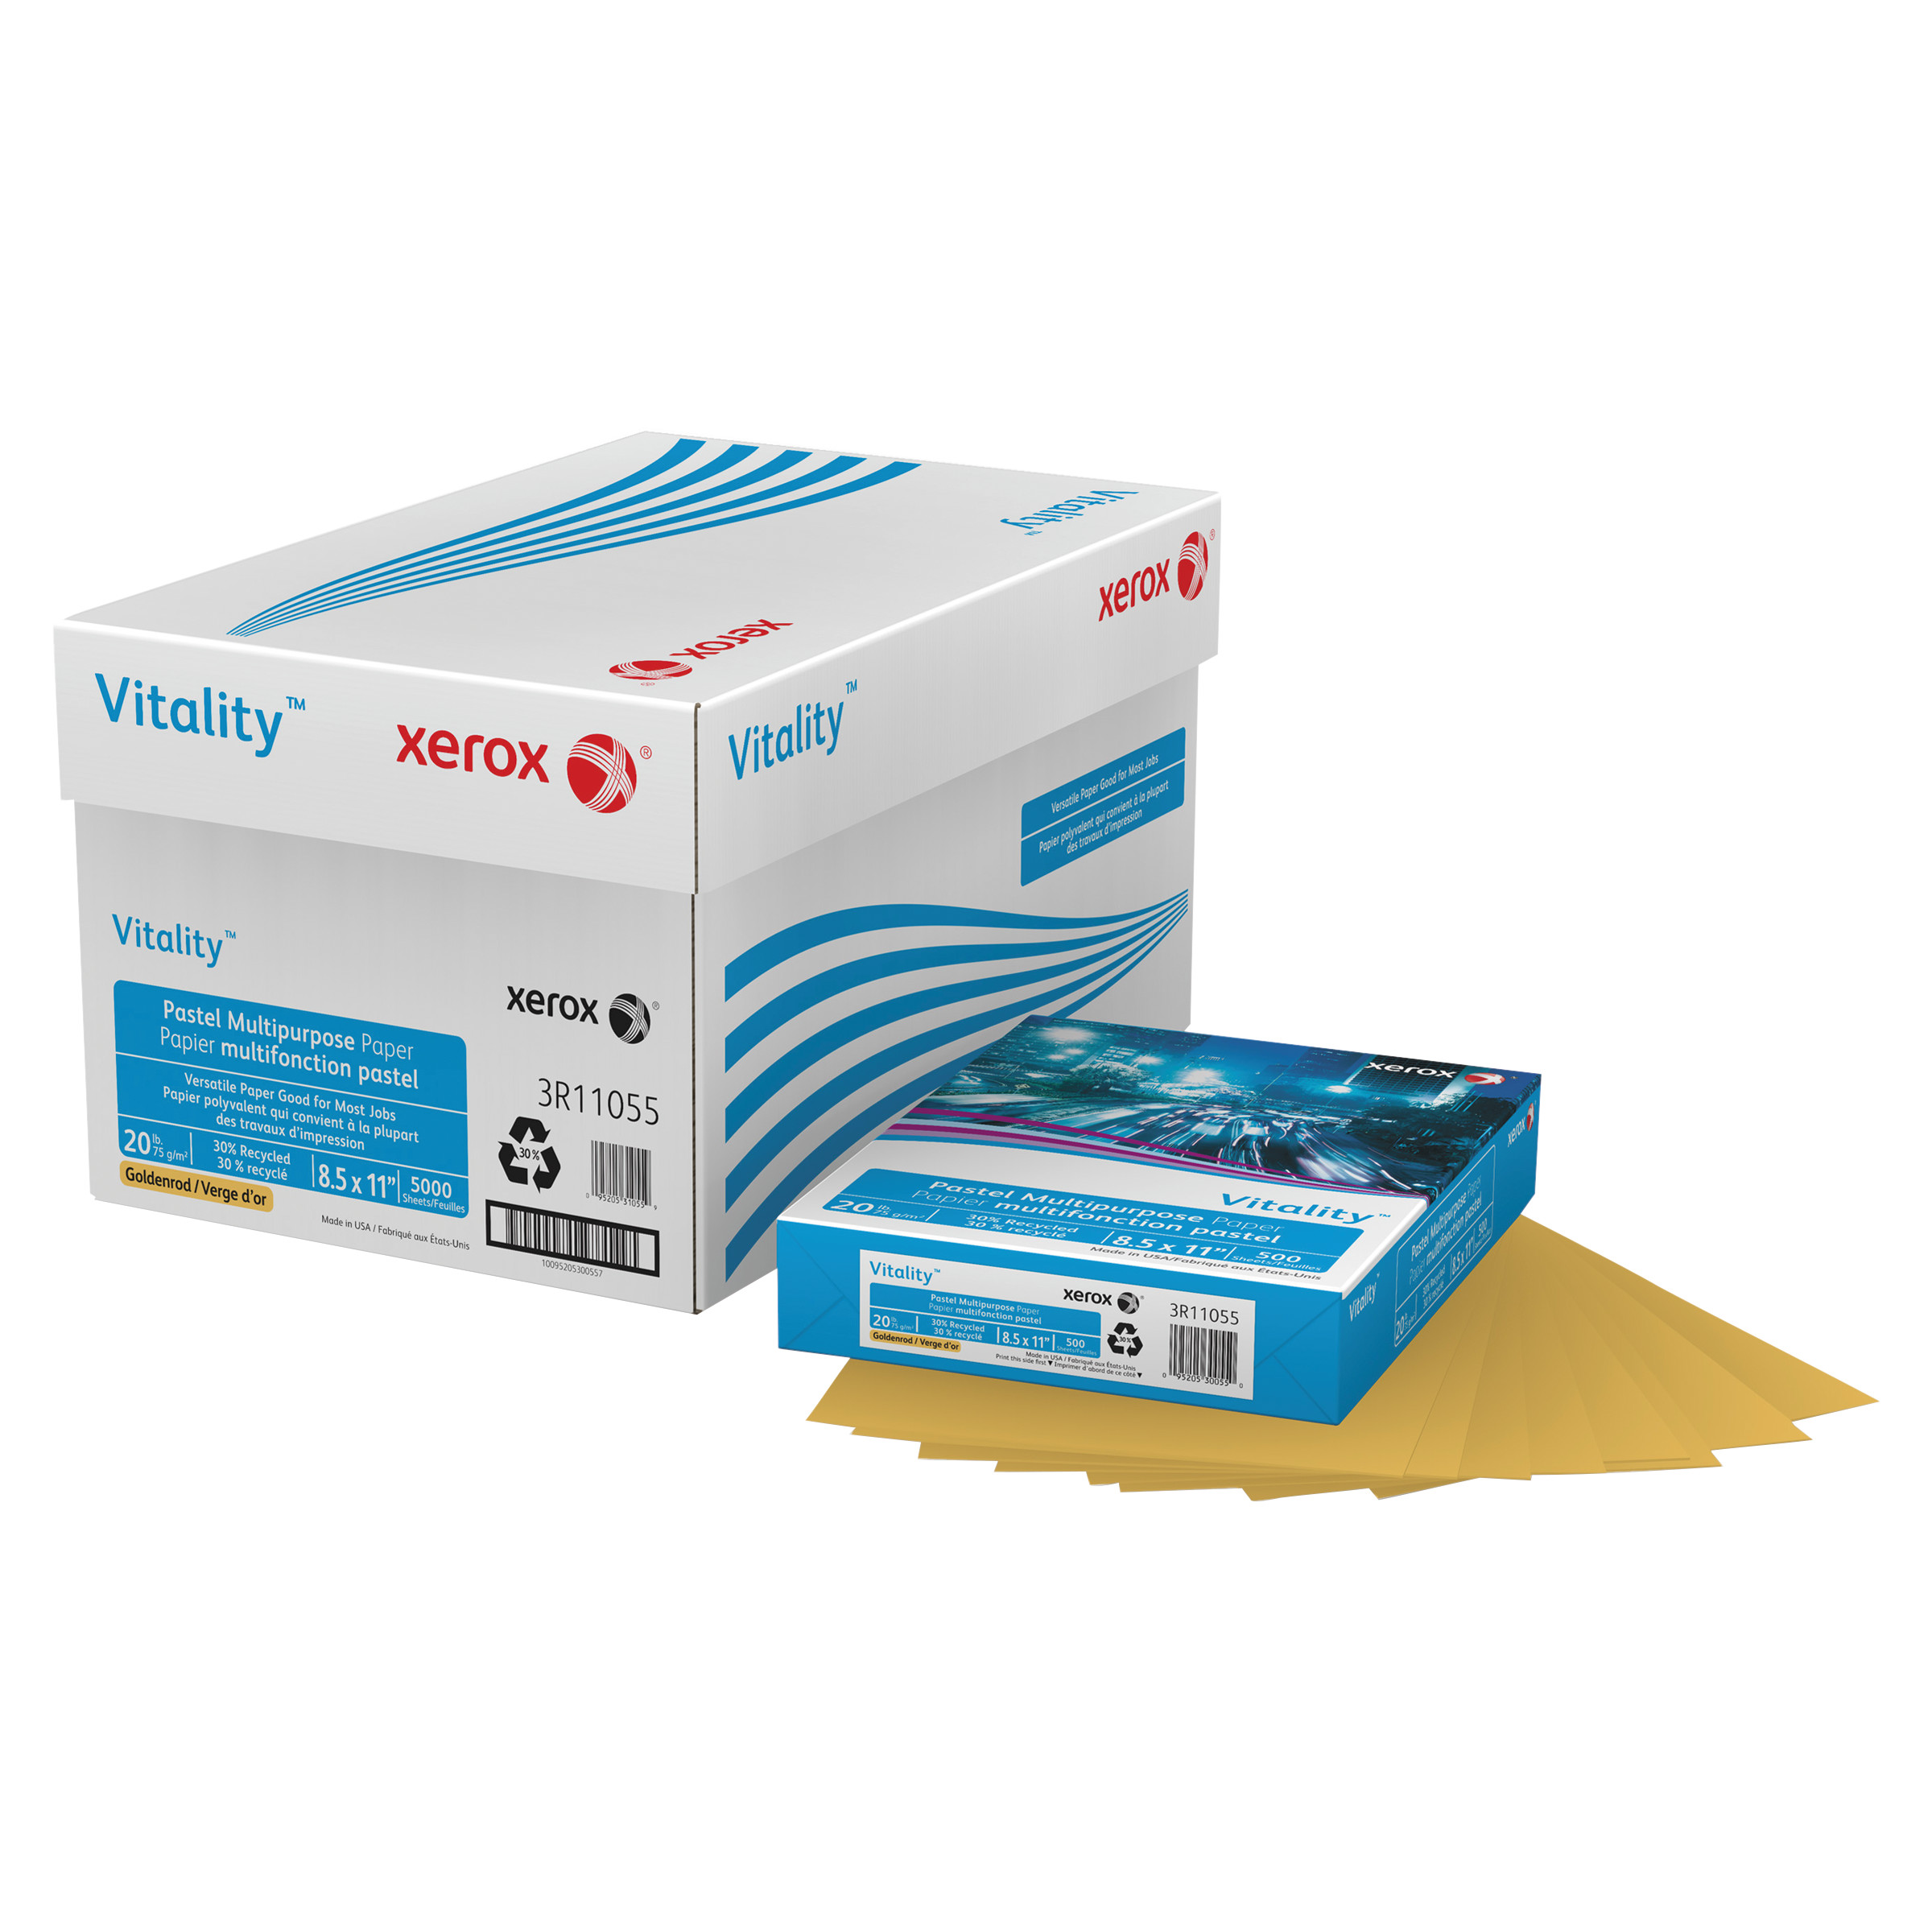 Xerox Vitality Pastel Multipurpose Paper, 8 1/2 x 11, Gold, 500 Sheets/RM -XER3R11055